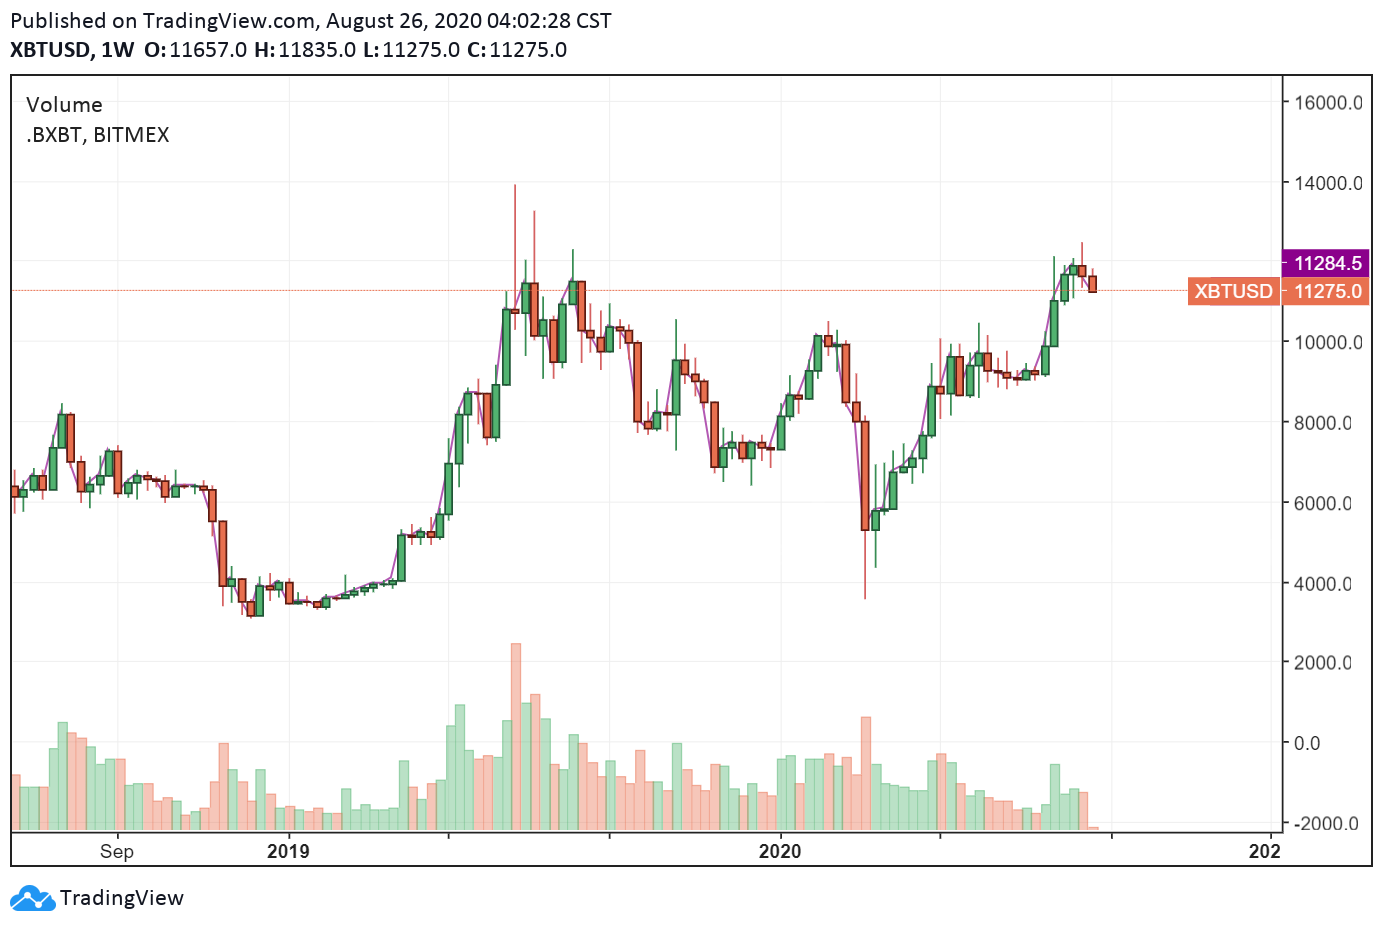 XBT-USD 1 week chart. Source: TradingView.com